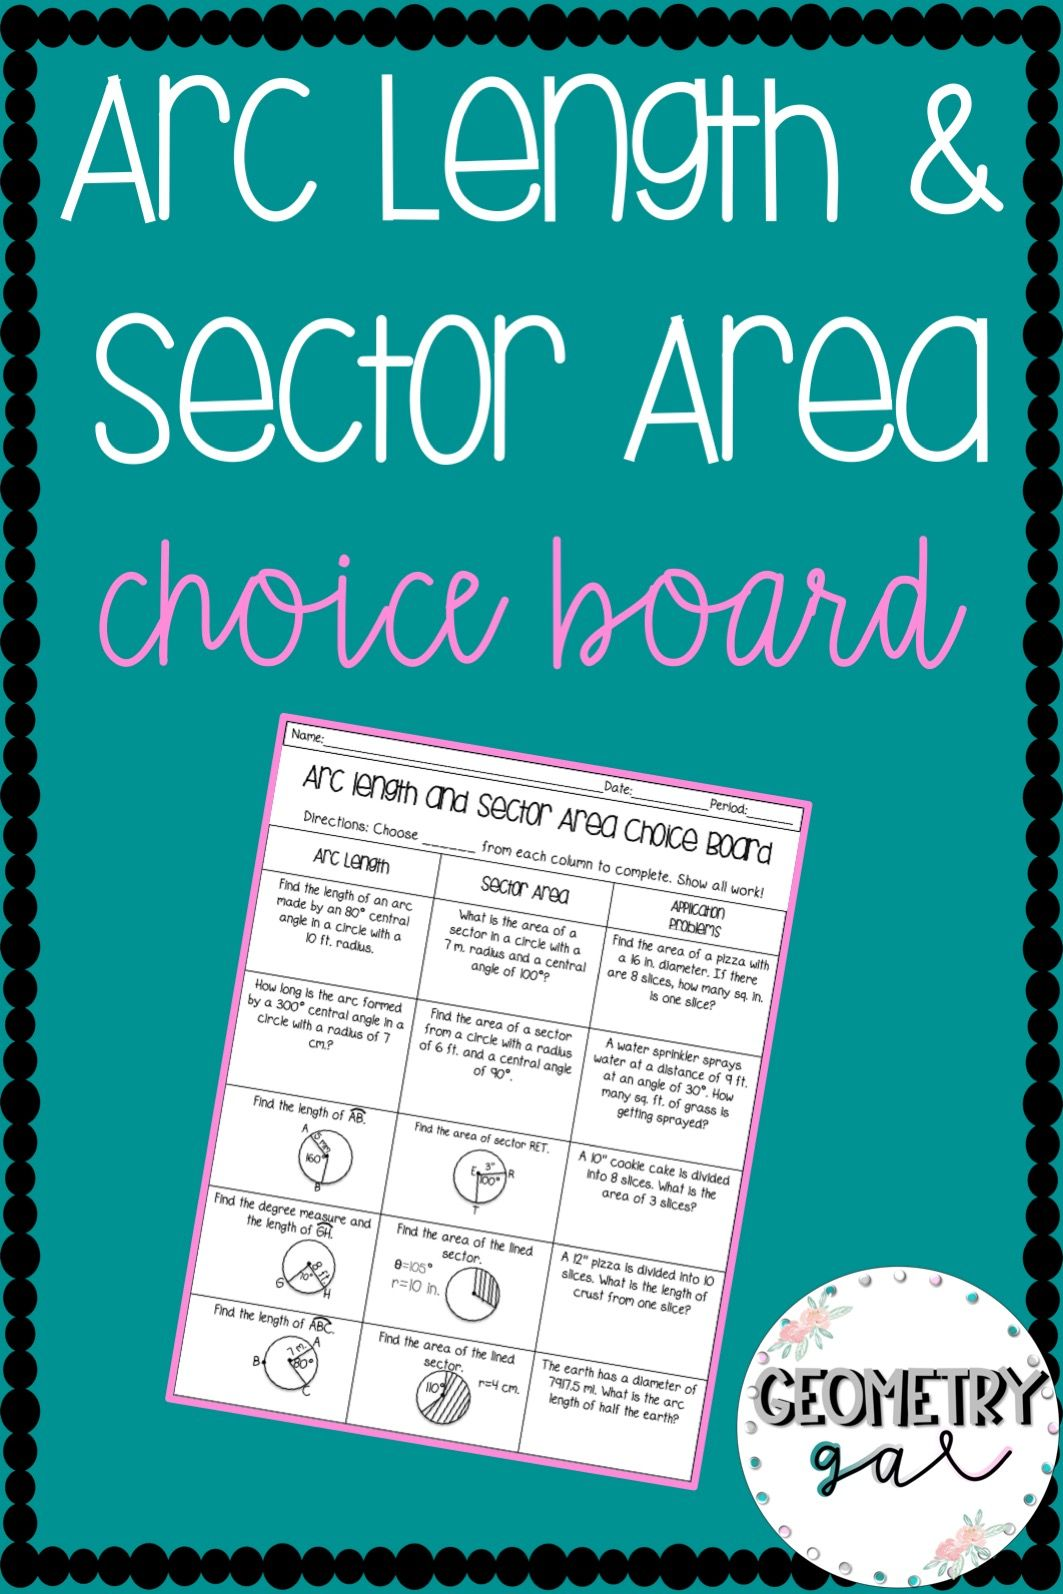 Arc Length And Sector Area Choice Board All Things Geometry